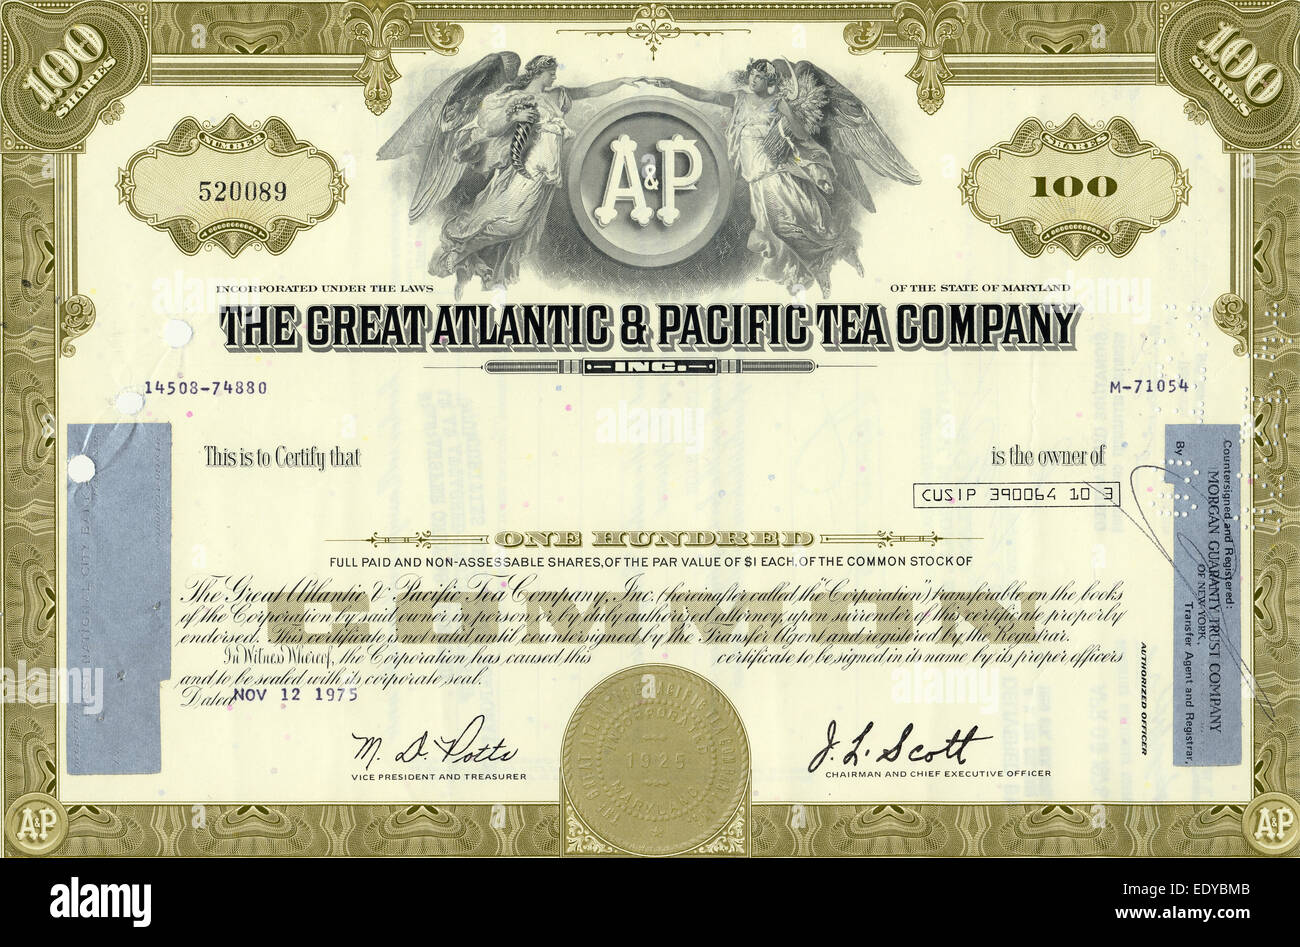 Historic share certificate, The Great Atlantic & Pacific Tea Company, Maryland, USA, 1975 - Stock Image